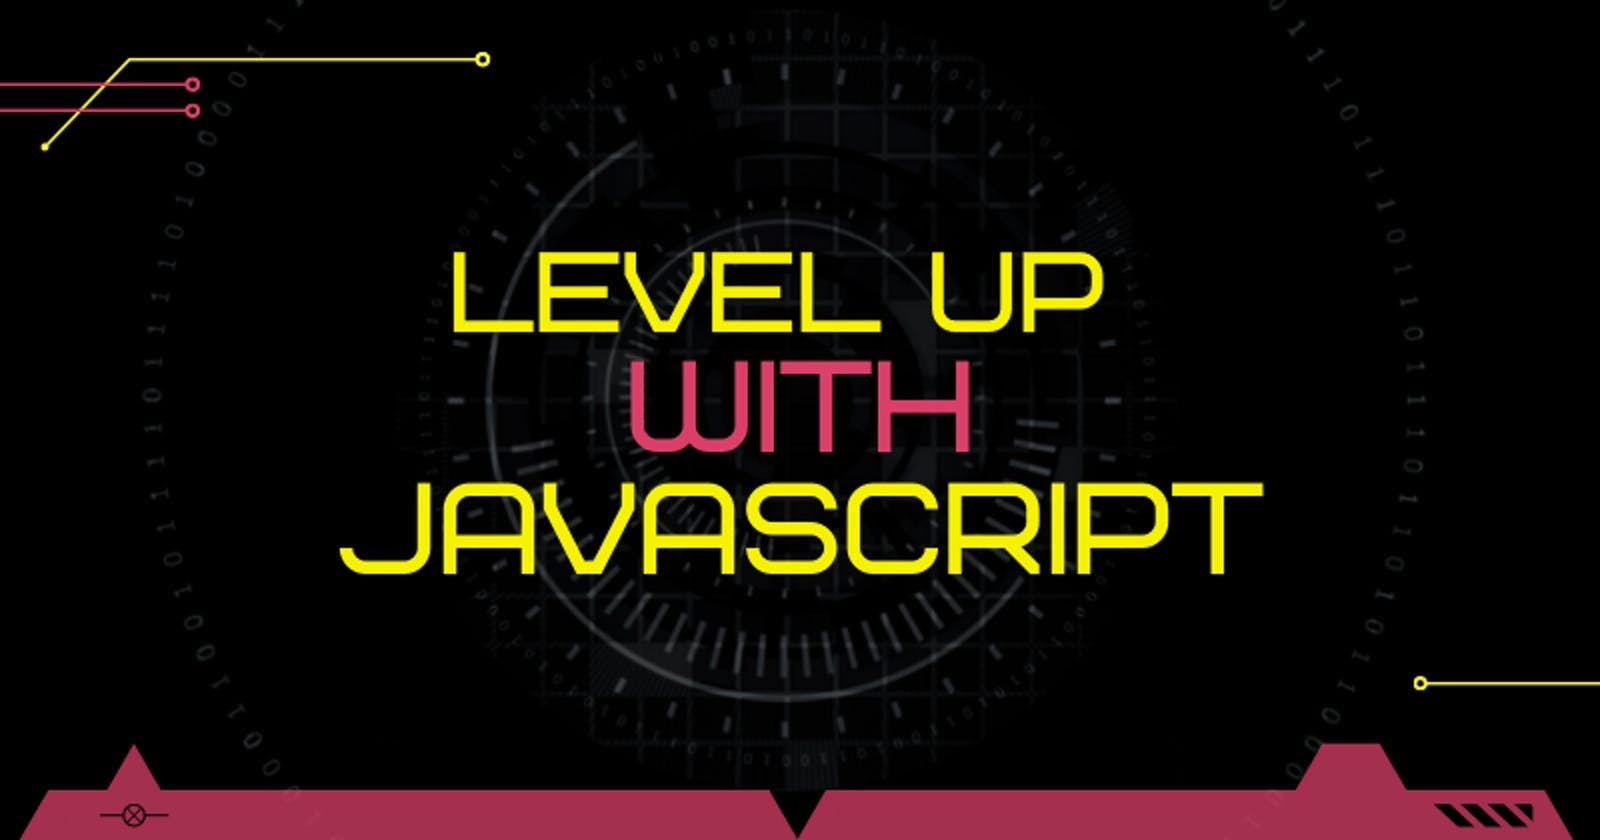 LEVEL UP with JavaScript! LVL 5